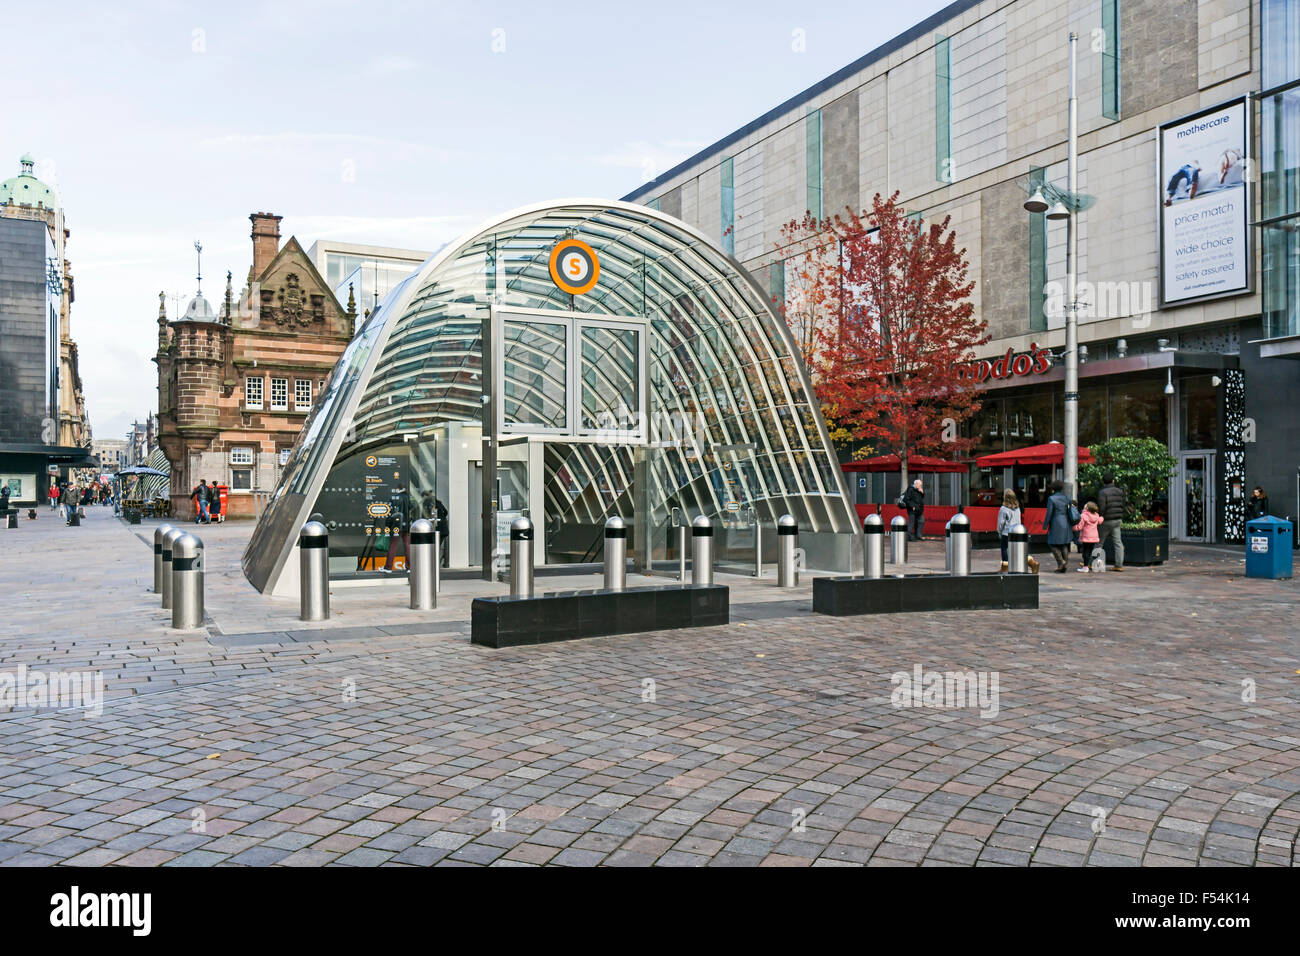 Southern entrance to SPT subway station in St. Enoch Square Glasgow Scotland - Stock Image